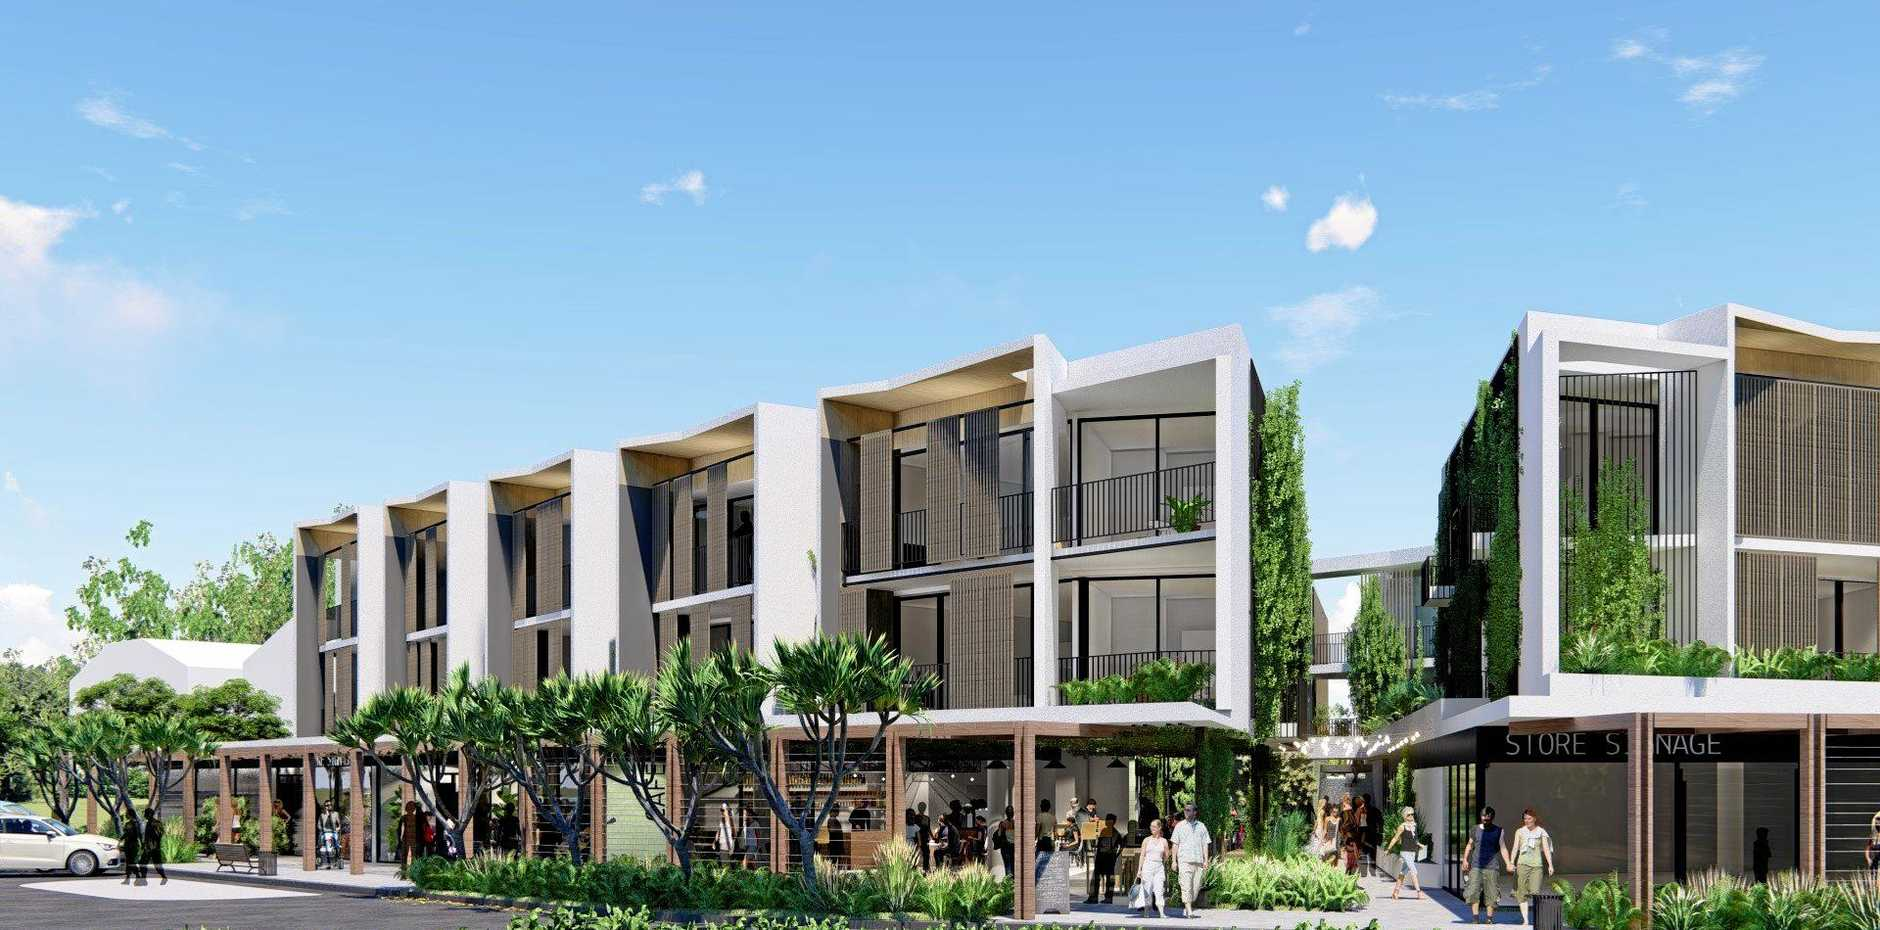 RE-THINK: The new three story mixed use development planned for Jonson Street Byron Bay.